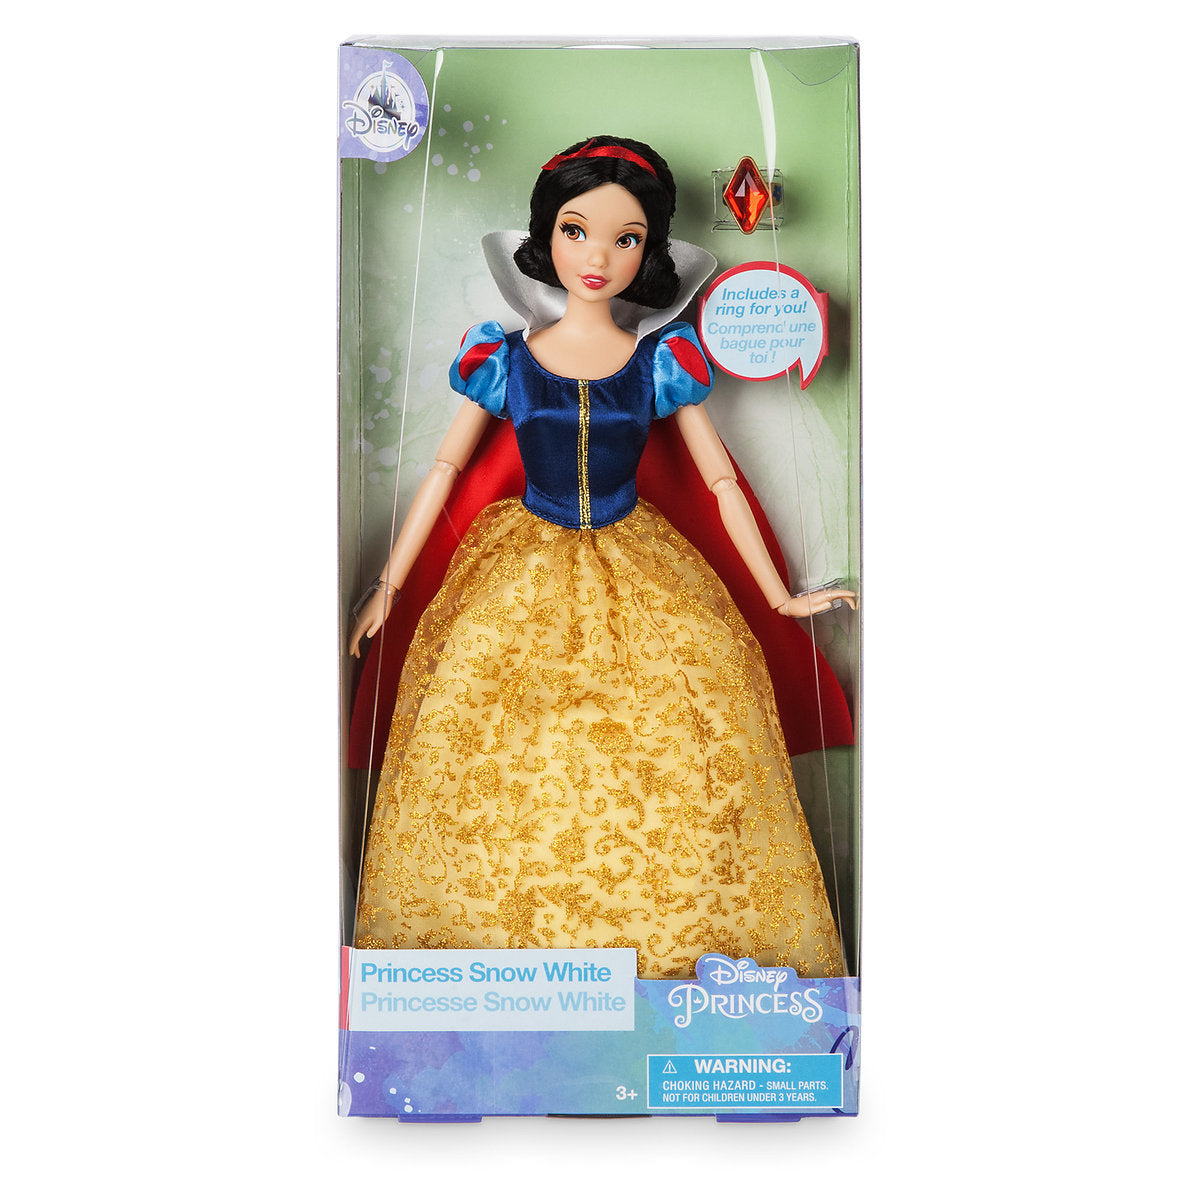 Disney Princess Snow White Classic Doll With Ring New With